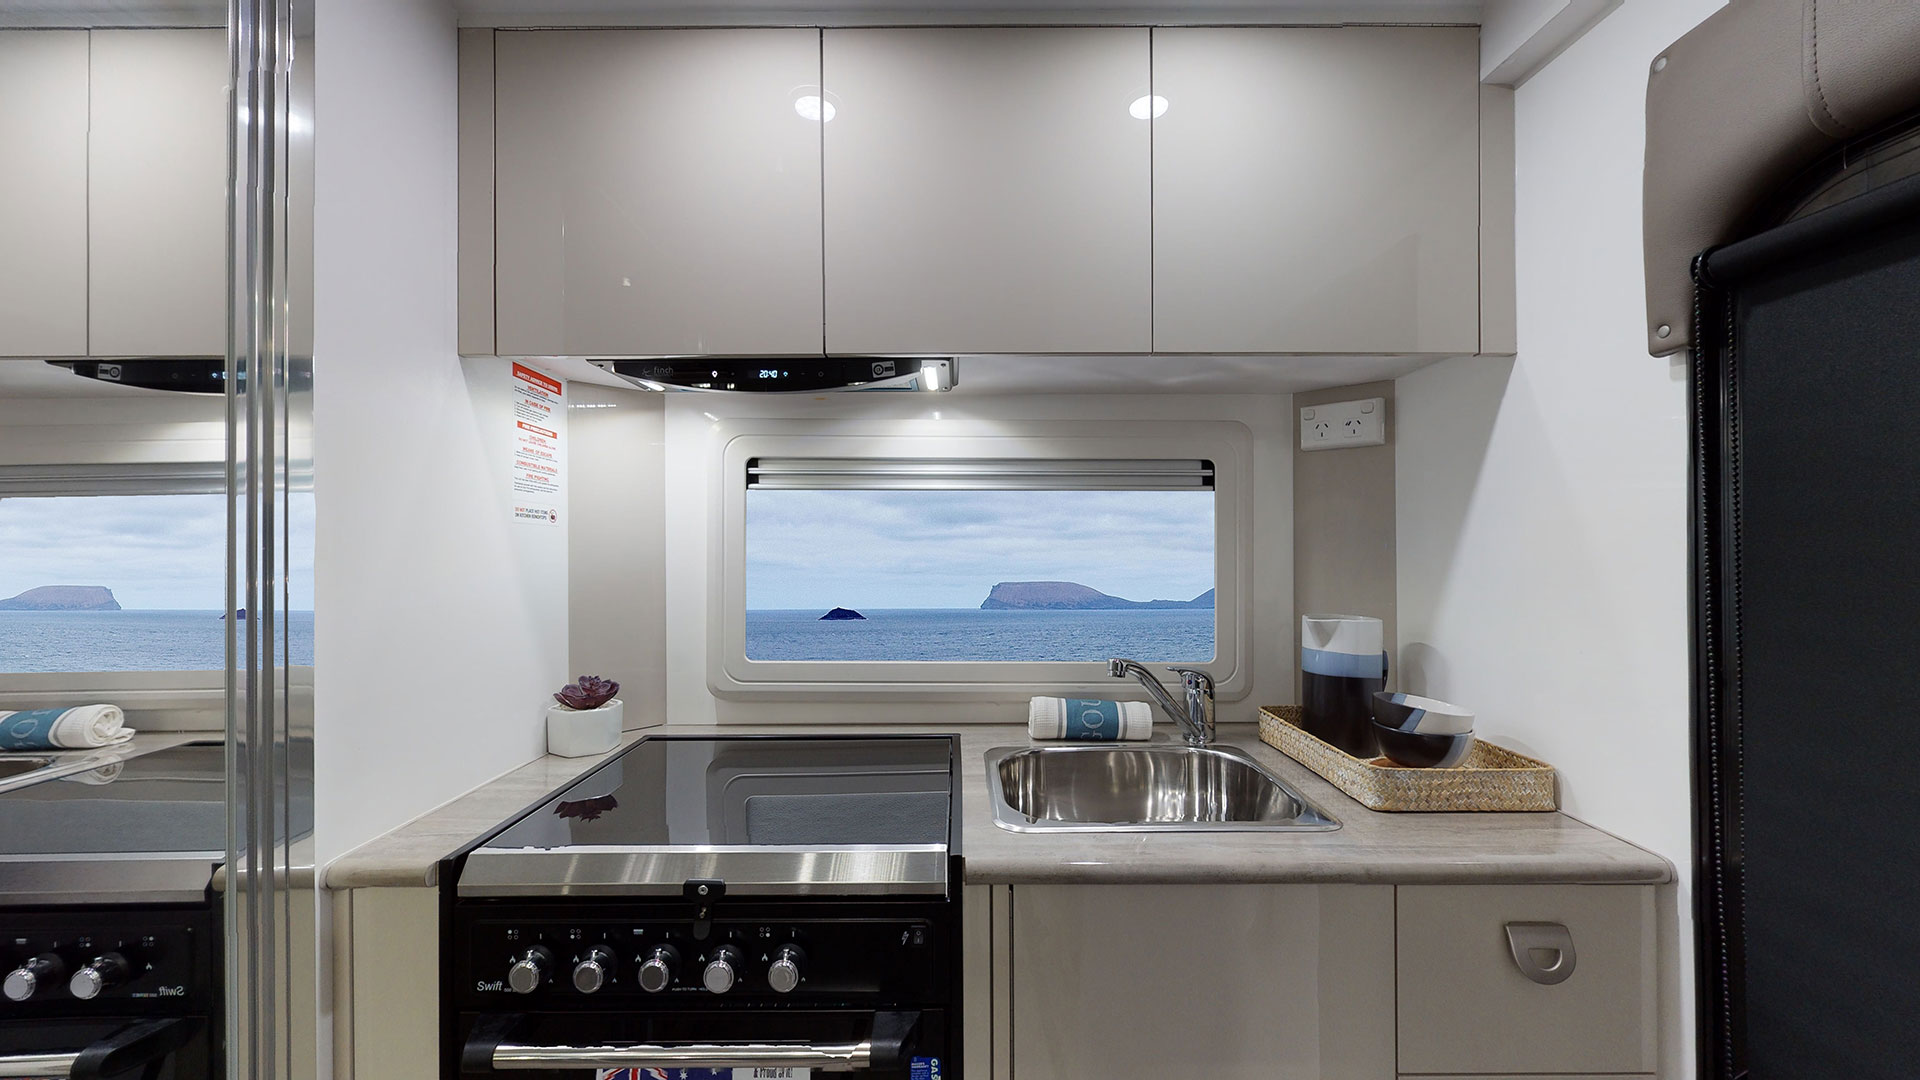 Cook up a storm with proper stove & grill, sink with flick mixer, and rangehood. Gloss finish on cabinets.